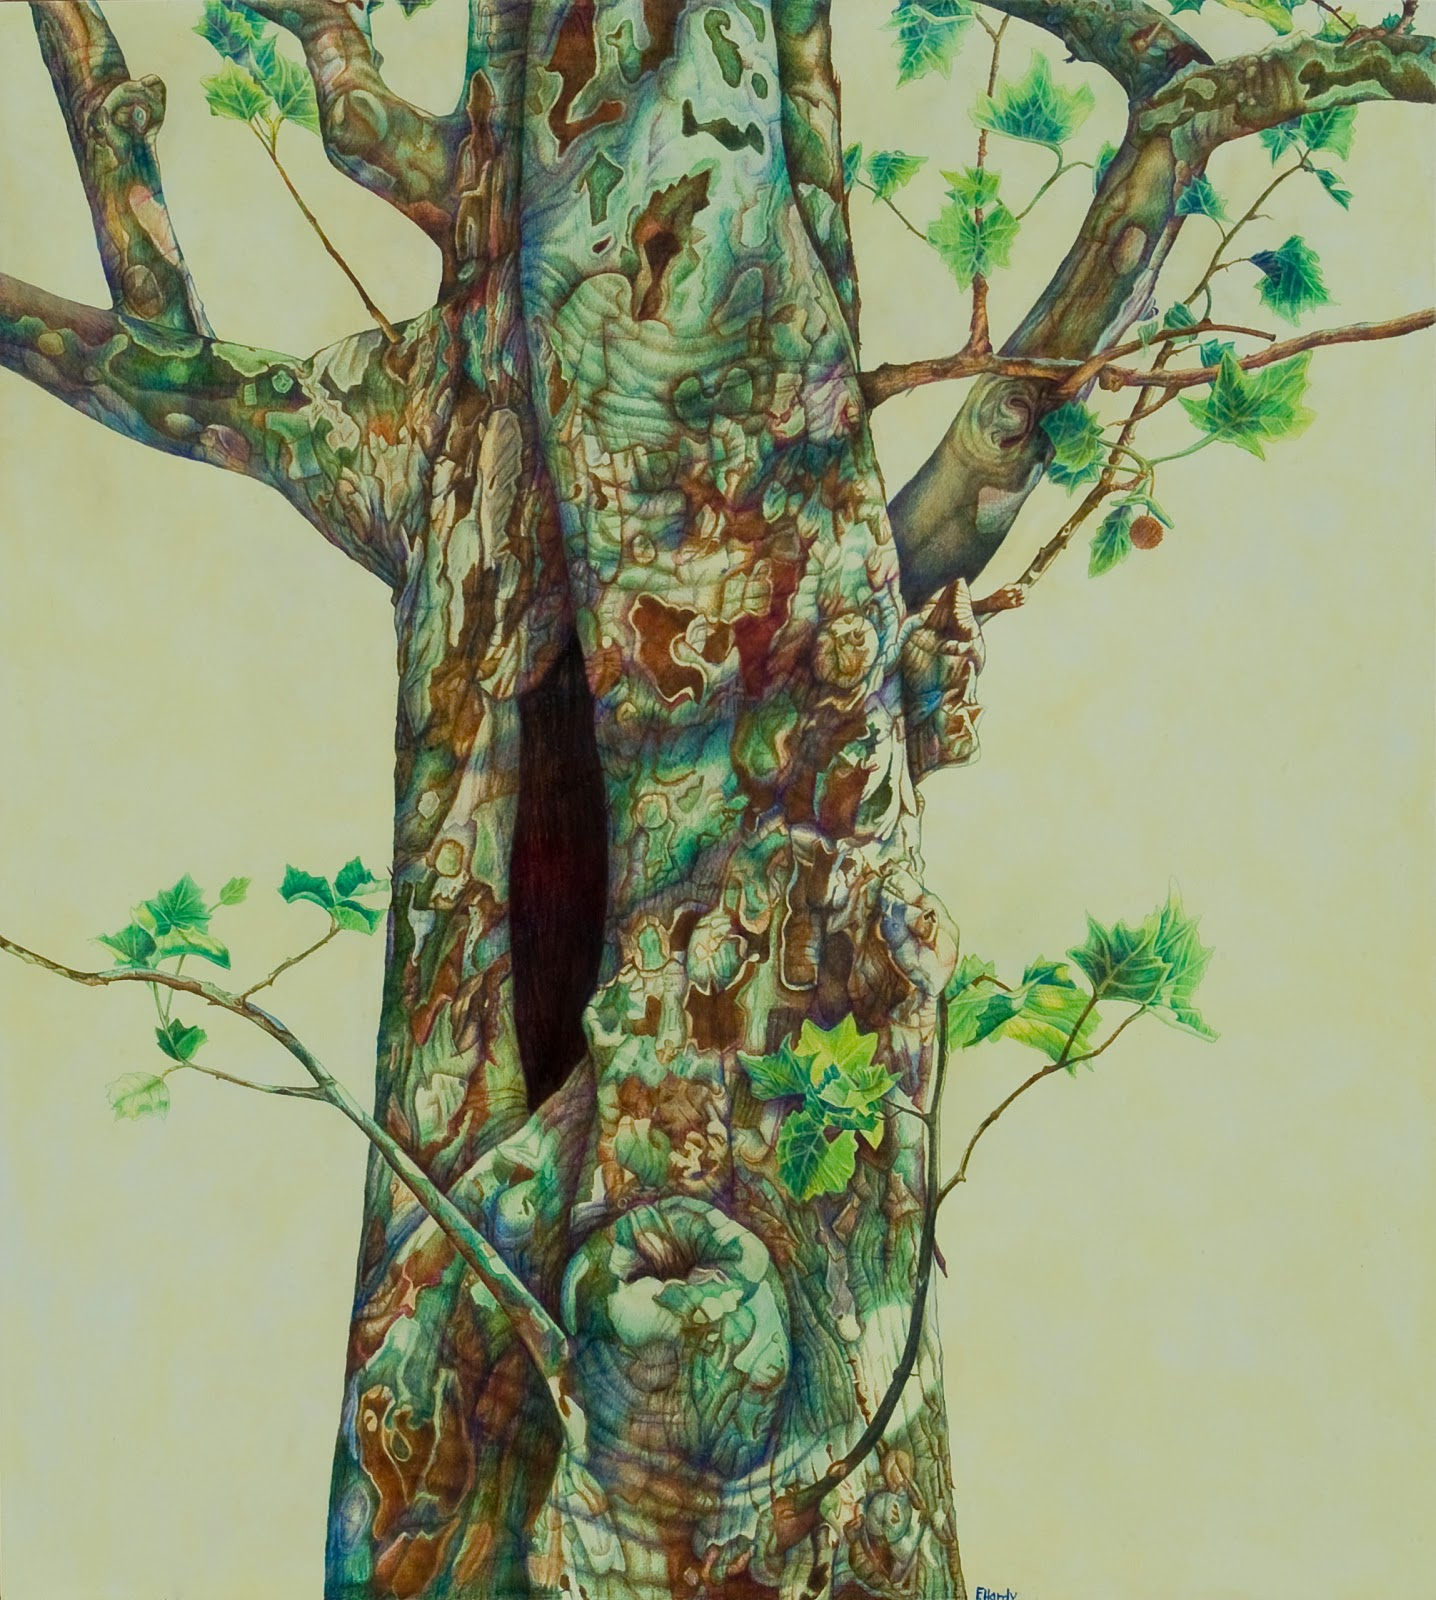 The Creative-Native Project: For Tree Lovers Like Me